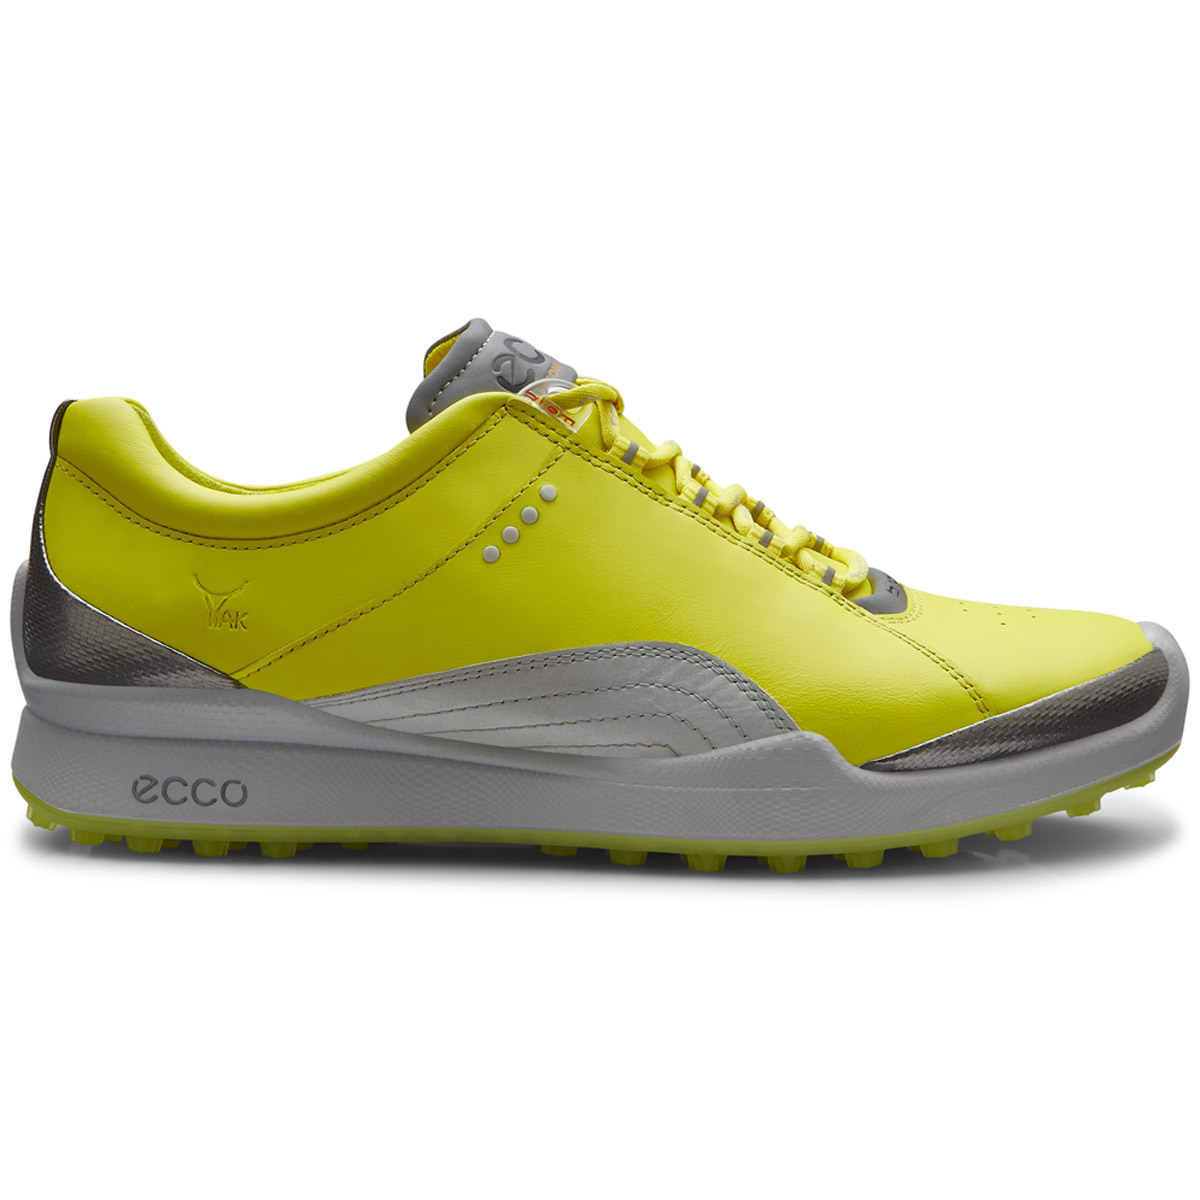 Ecco Womens Golf Shoes Size